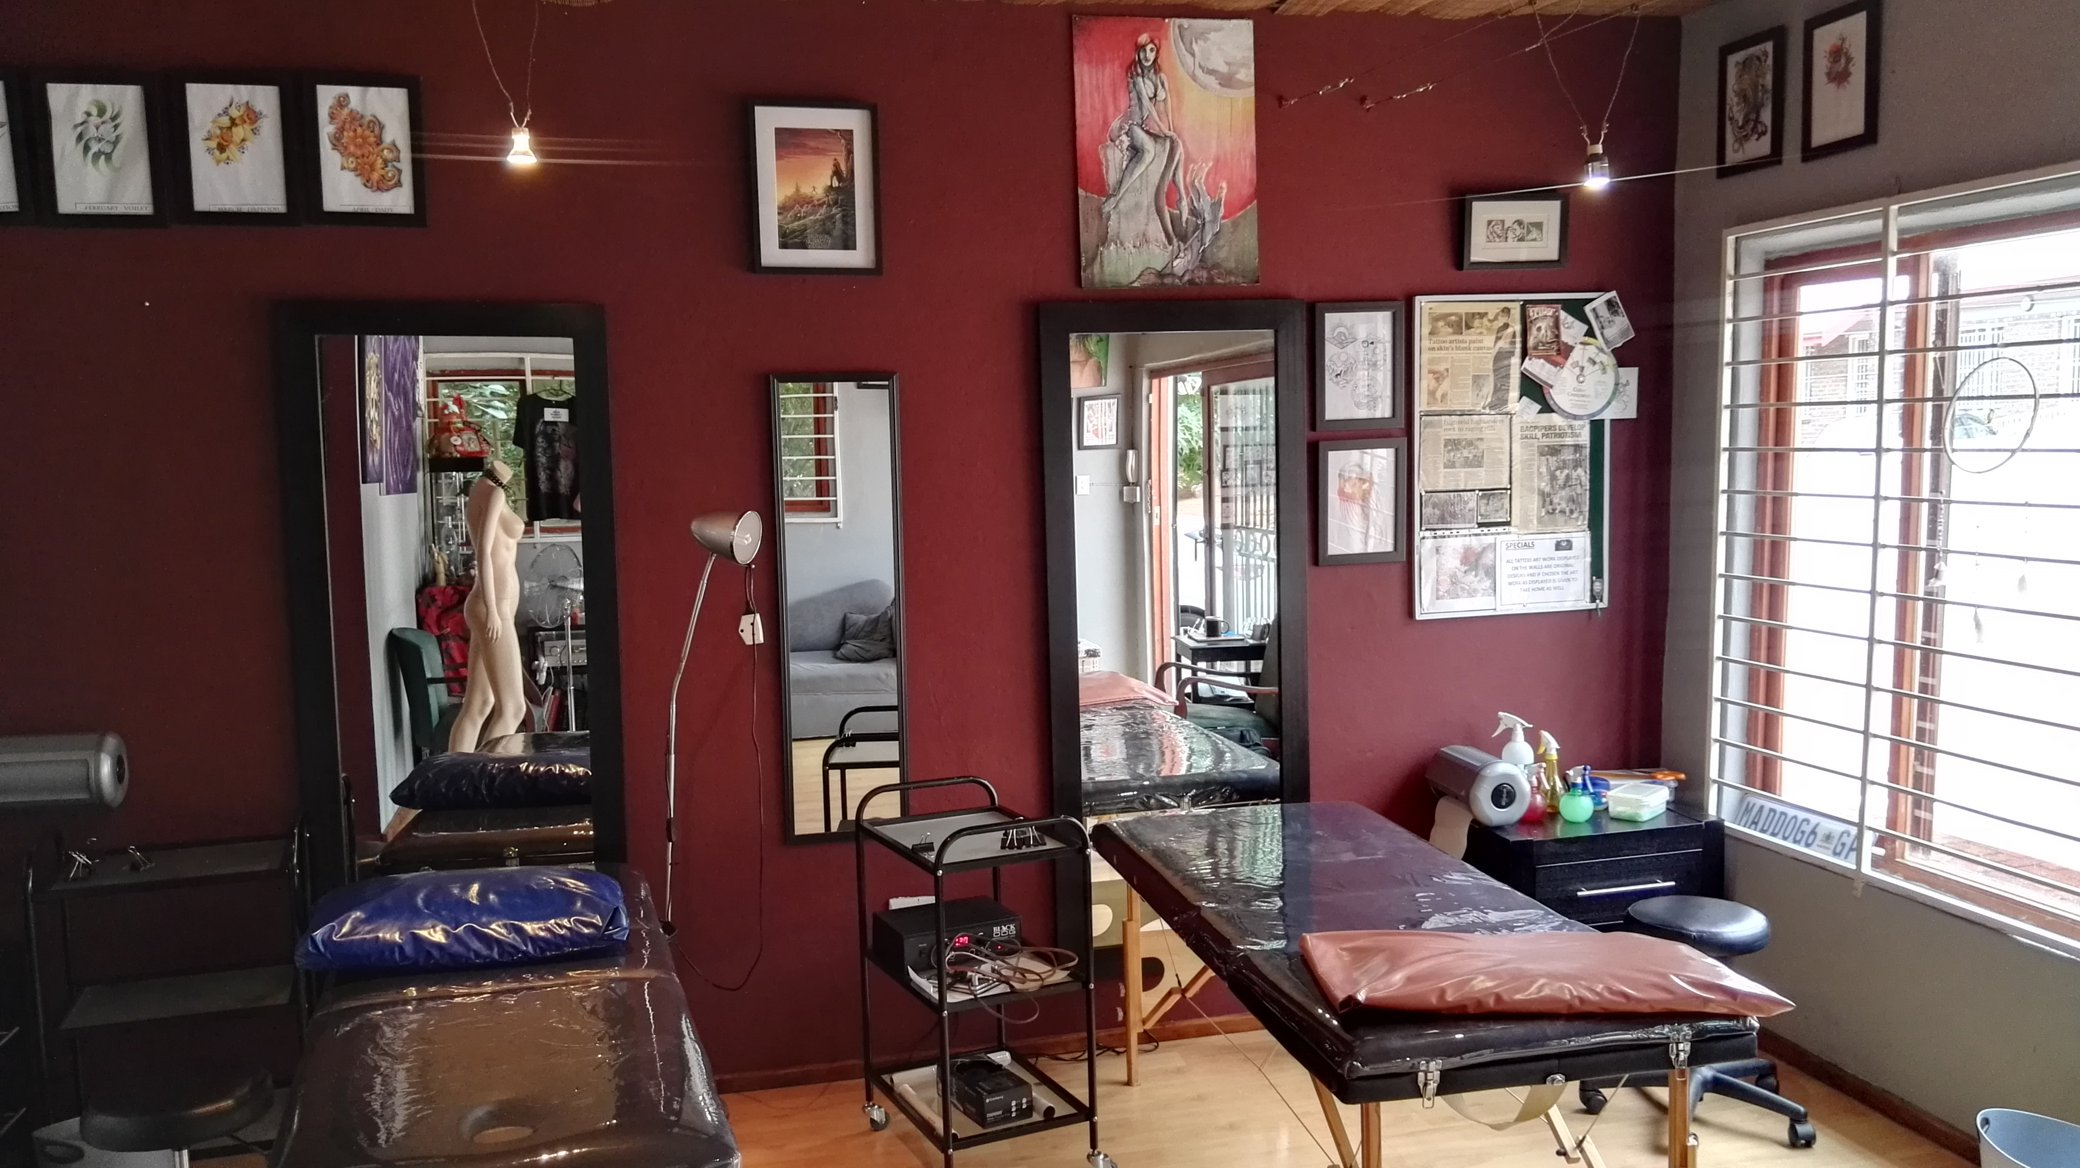 Living Gallery Skin Modification & Tattoo Studio